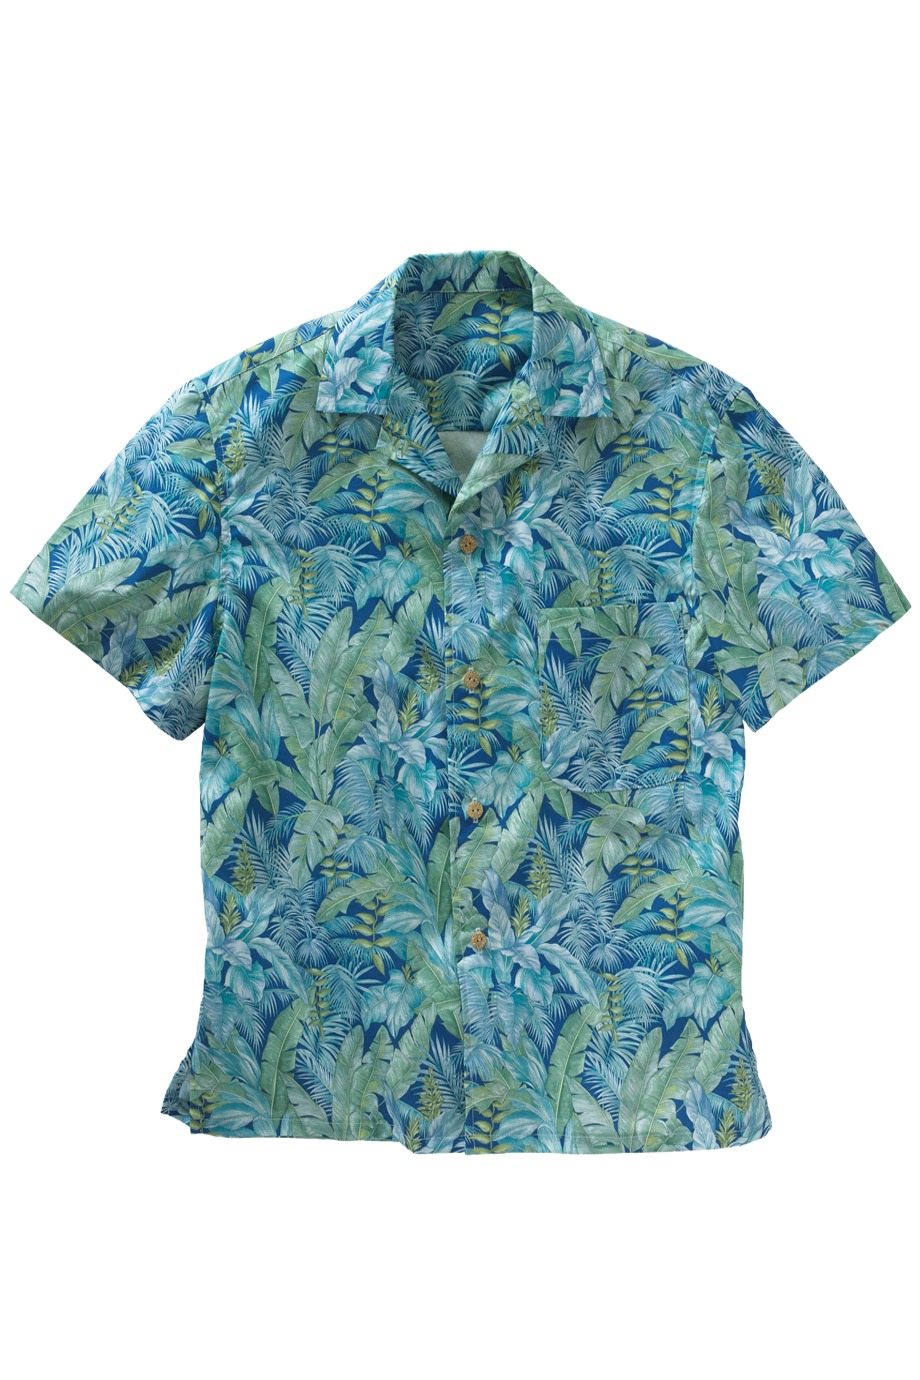 Edwards Garment 1032 - Tropical Leaf Camp Shirt